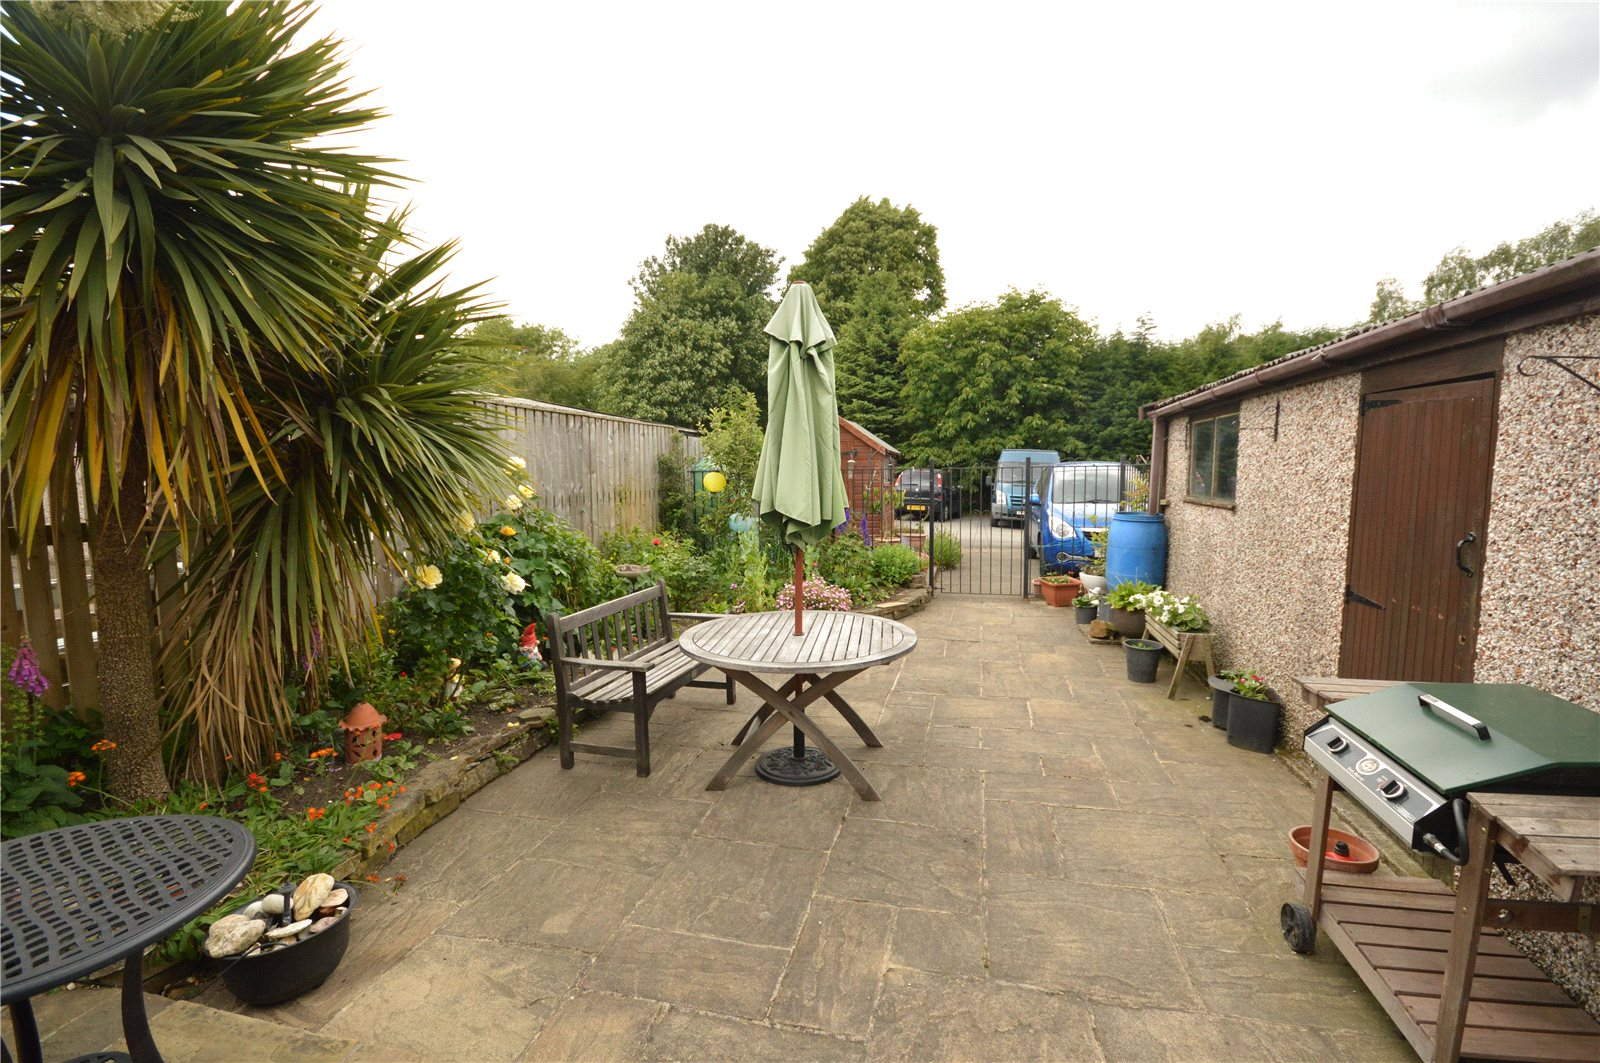 property for sale in Horsforth, back garden patio